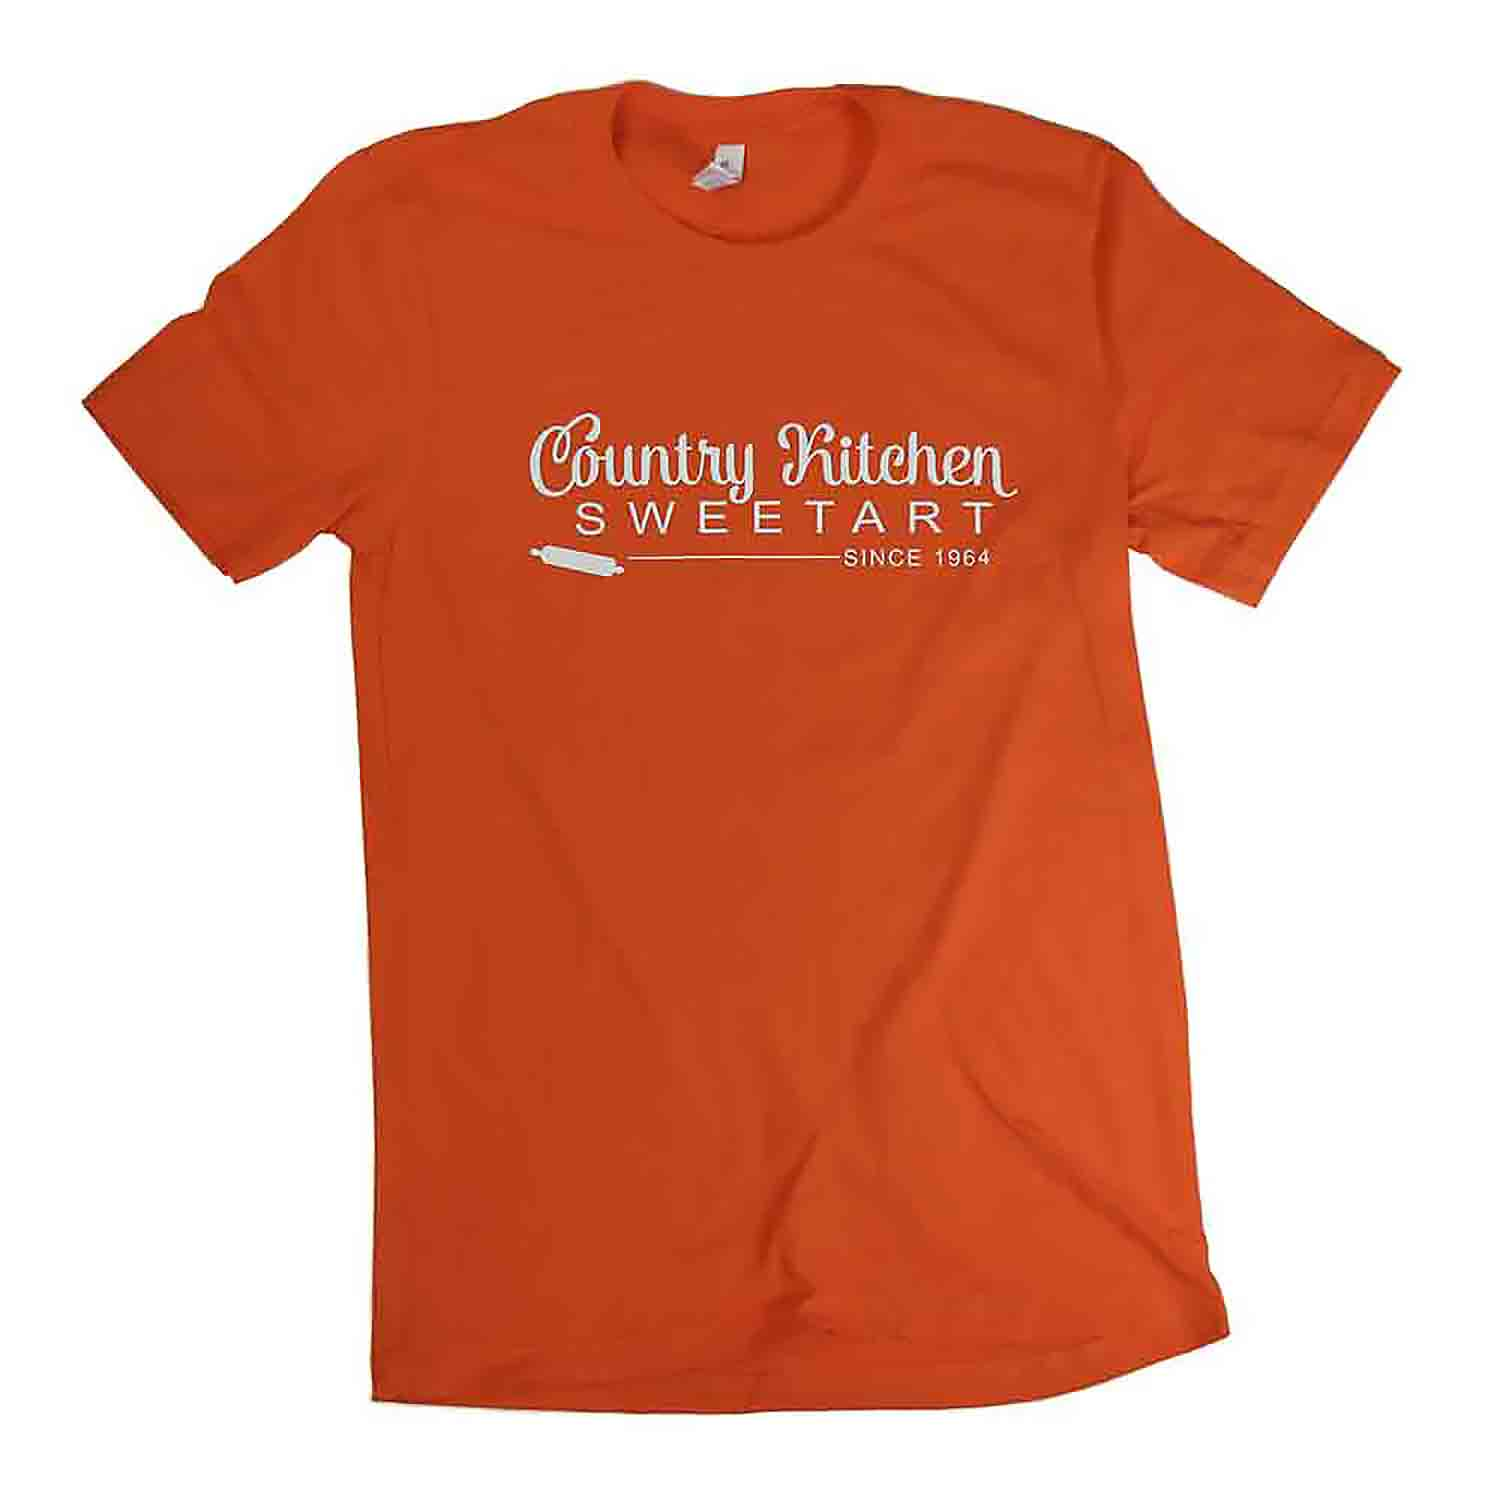 Orange Country Kitchen Sweetart T-Shirt - Medium